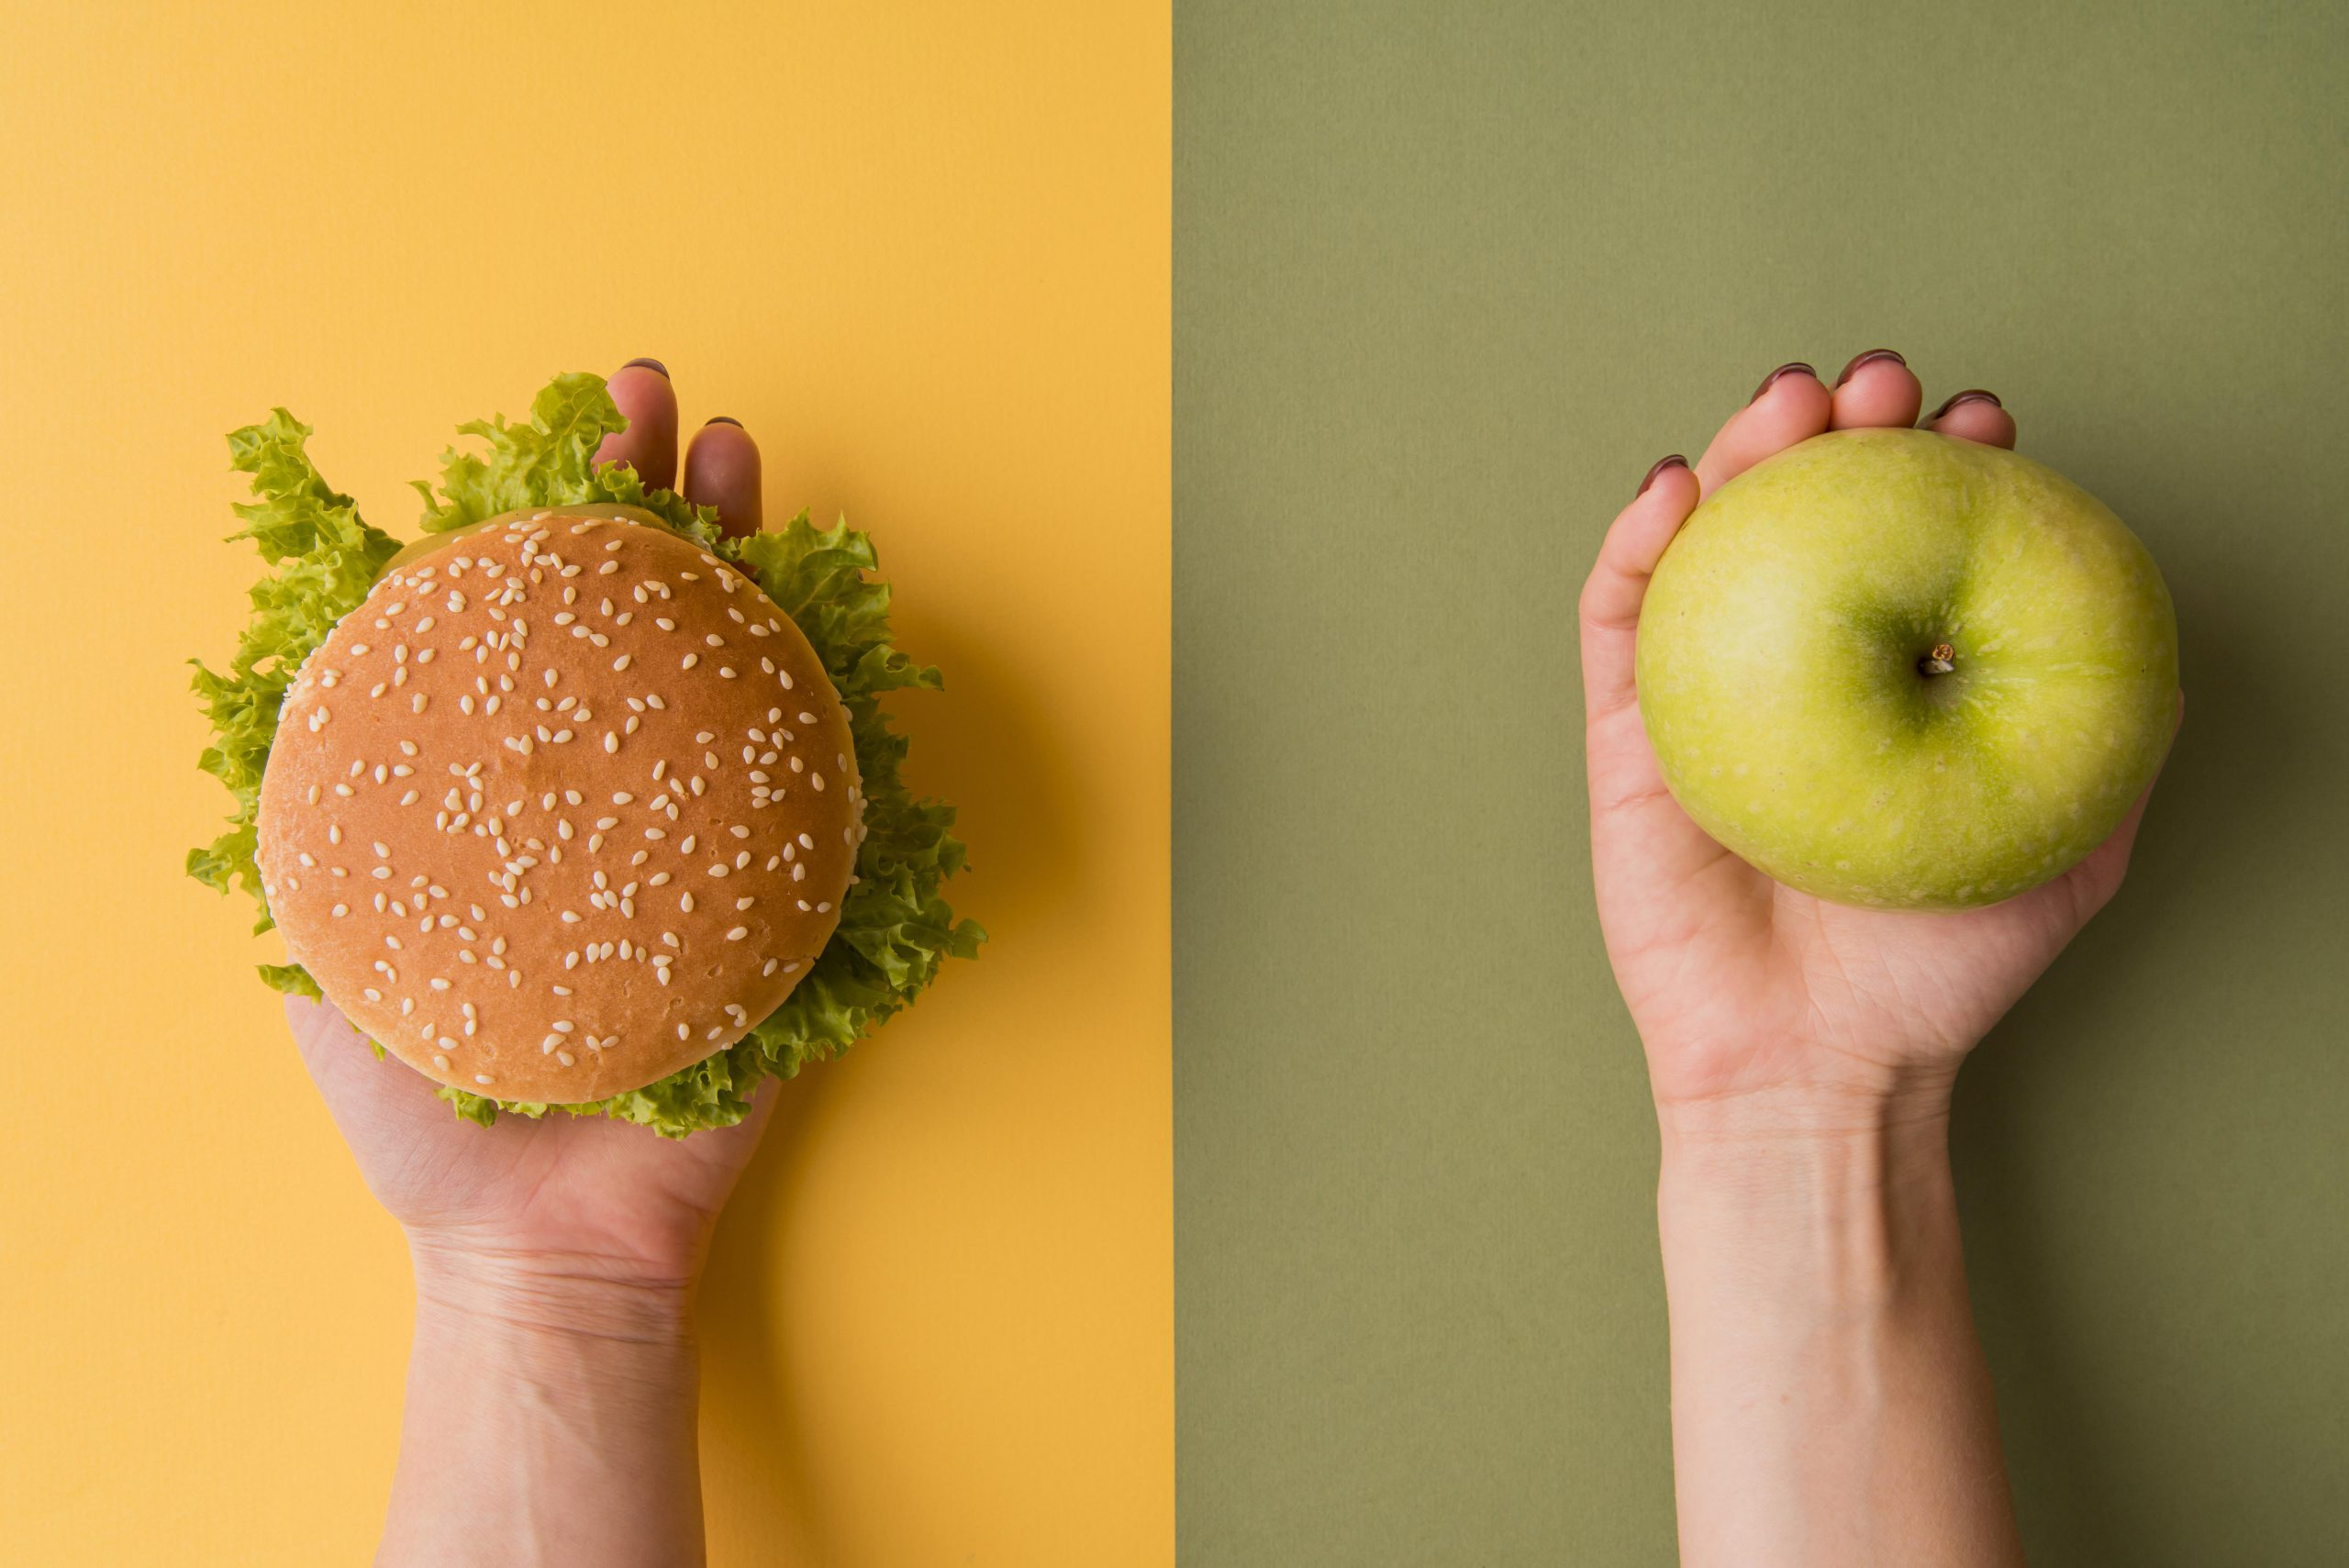 Hamburger and apple illustrate bad and good diet for kidneys